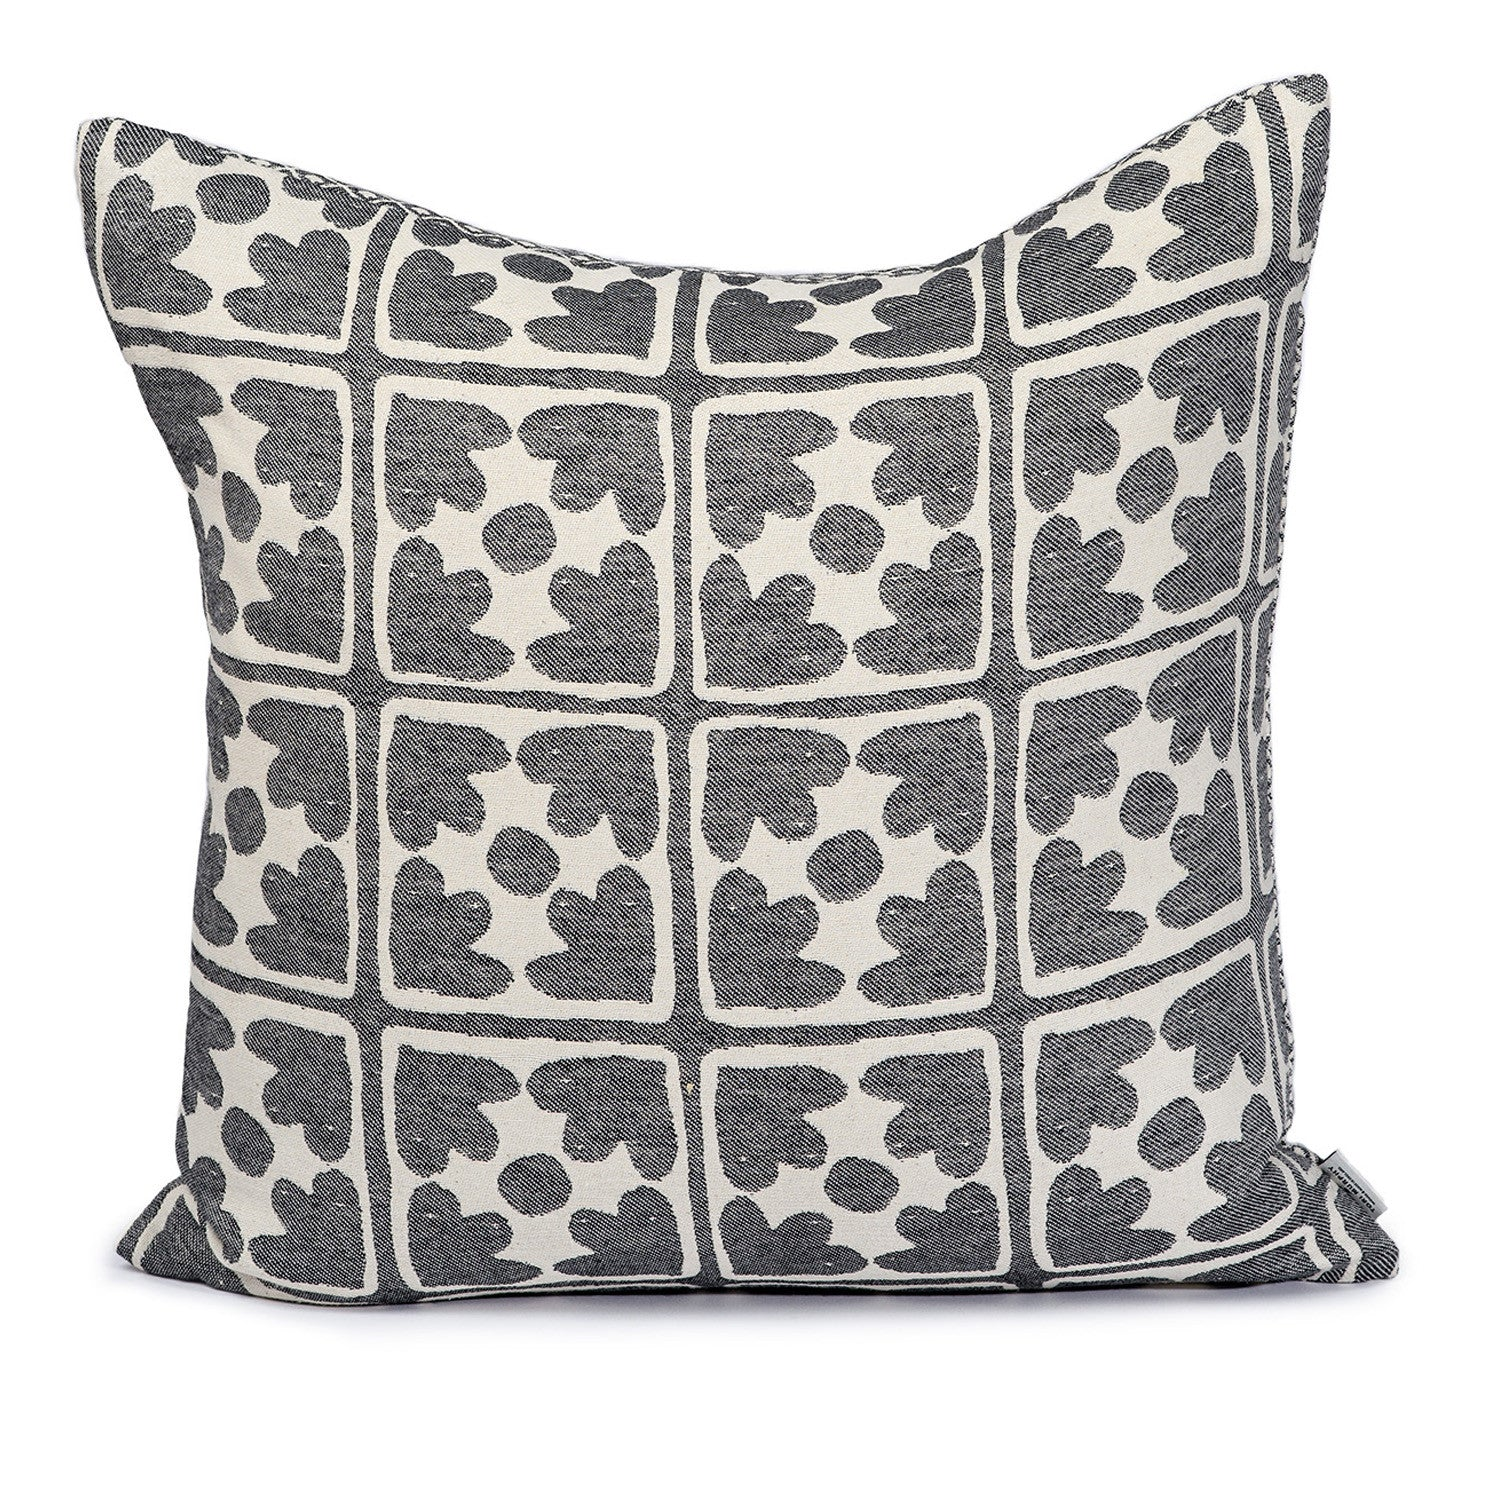 Seedling & Bloom Cushion Black